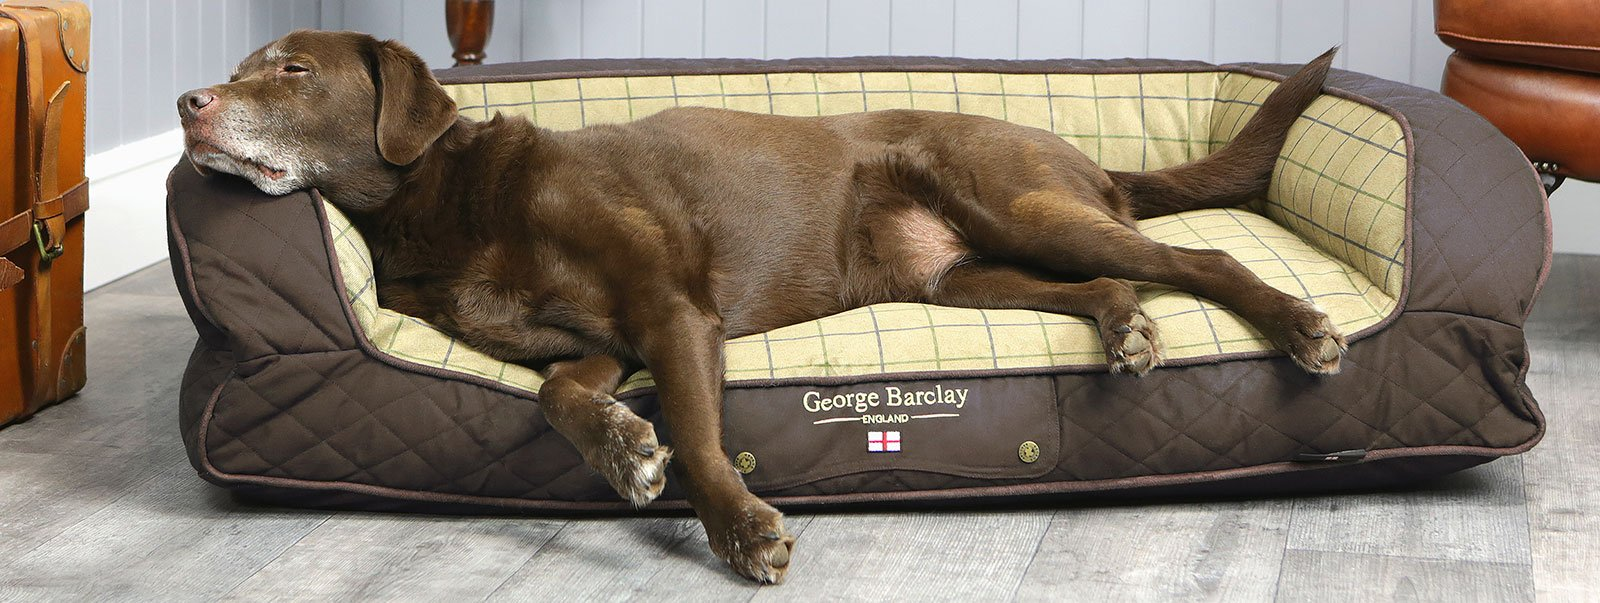 George Barclay Dog Beds